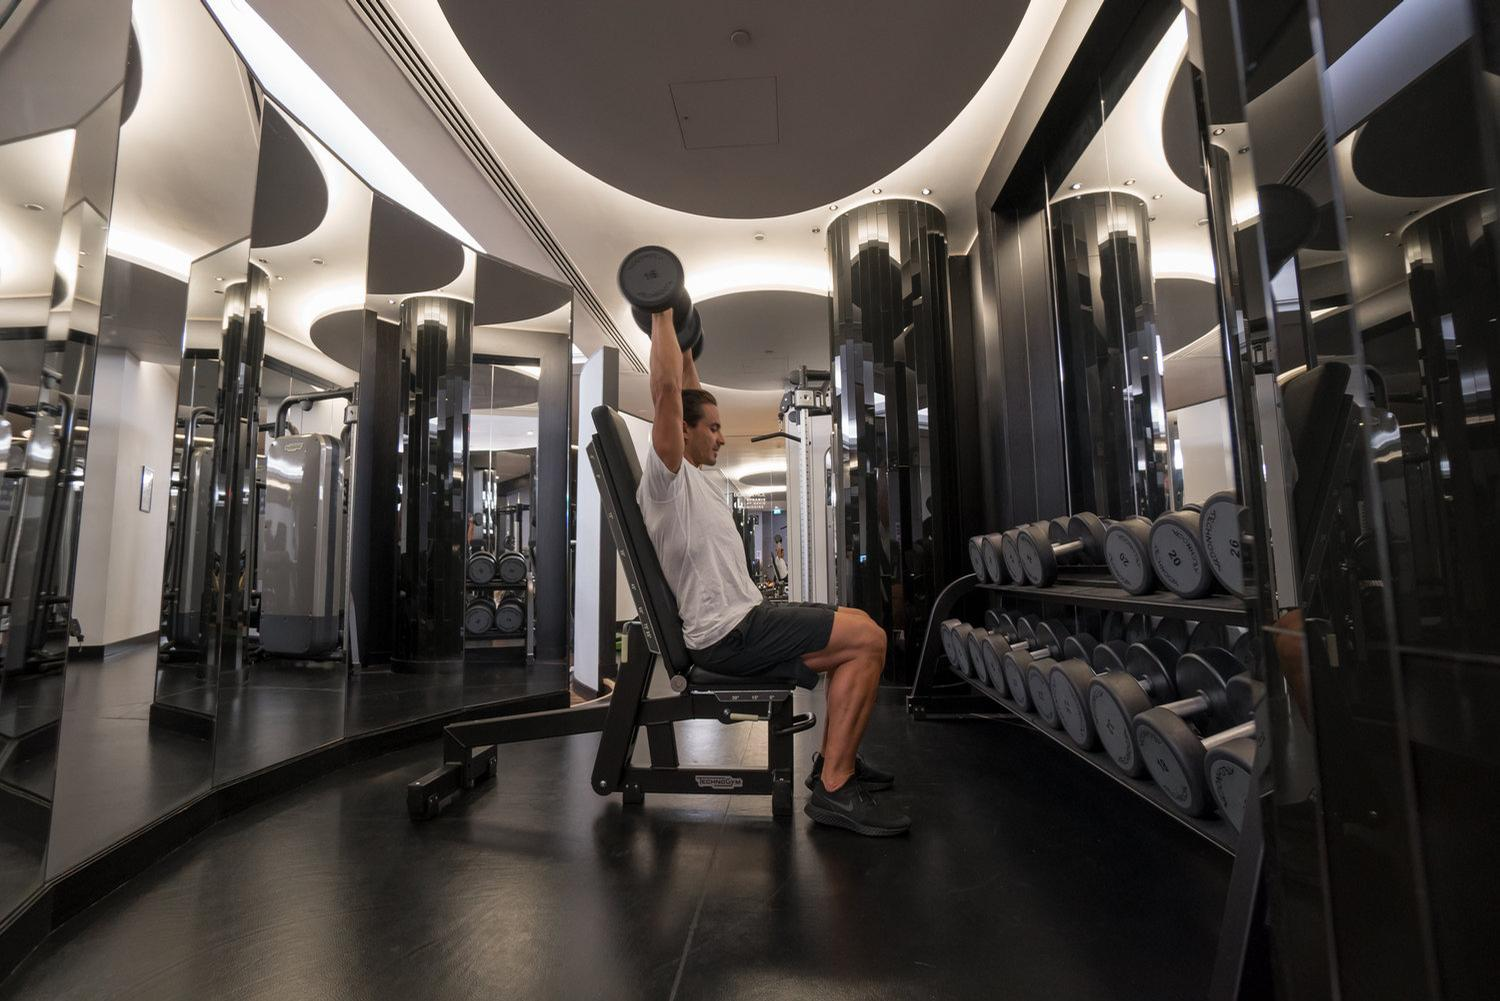 FitSpace will focus on personal training, small group classes and workshops / FitSpace